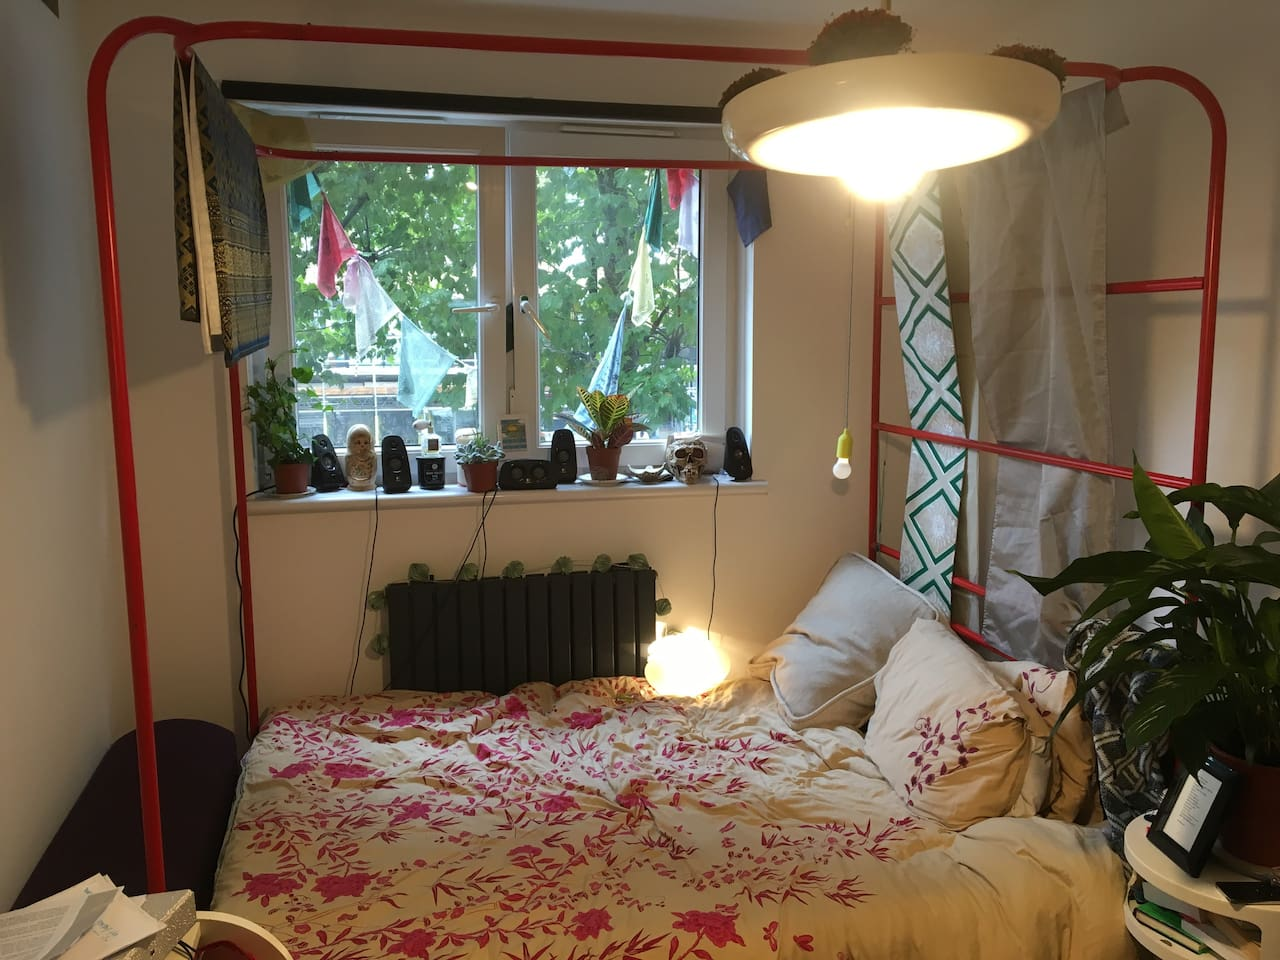 Master bedroom, home to you, a red four poster bed, more plants you can shake a stick at (even the ceiling light is a plant pot!), and USB charging :)